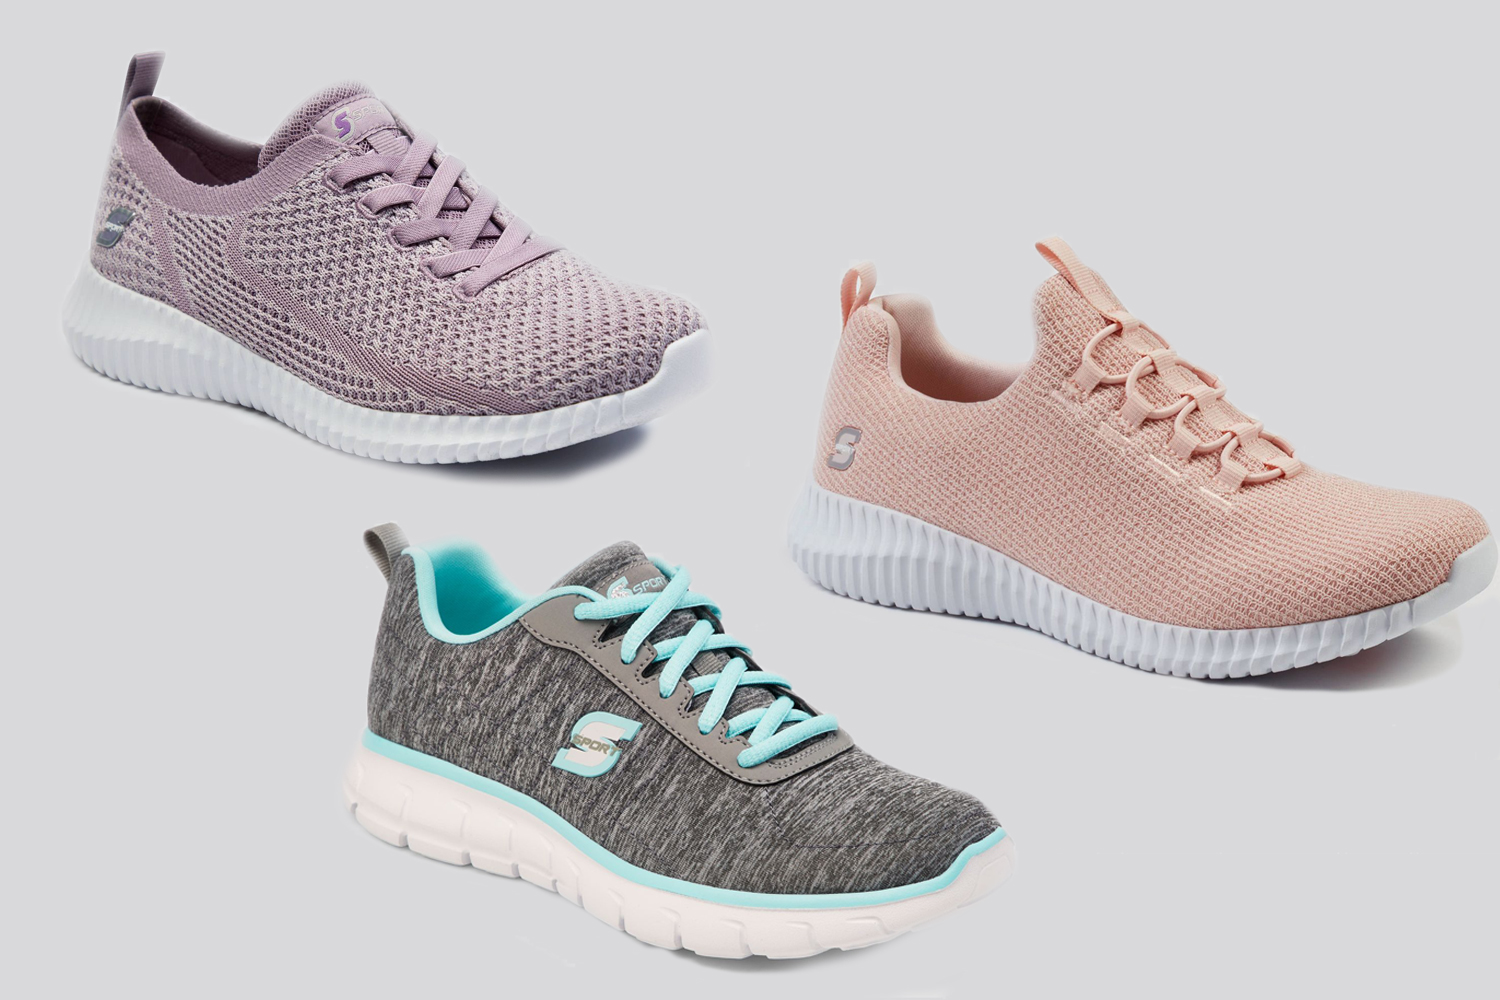 sketchers white womens sneakers